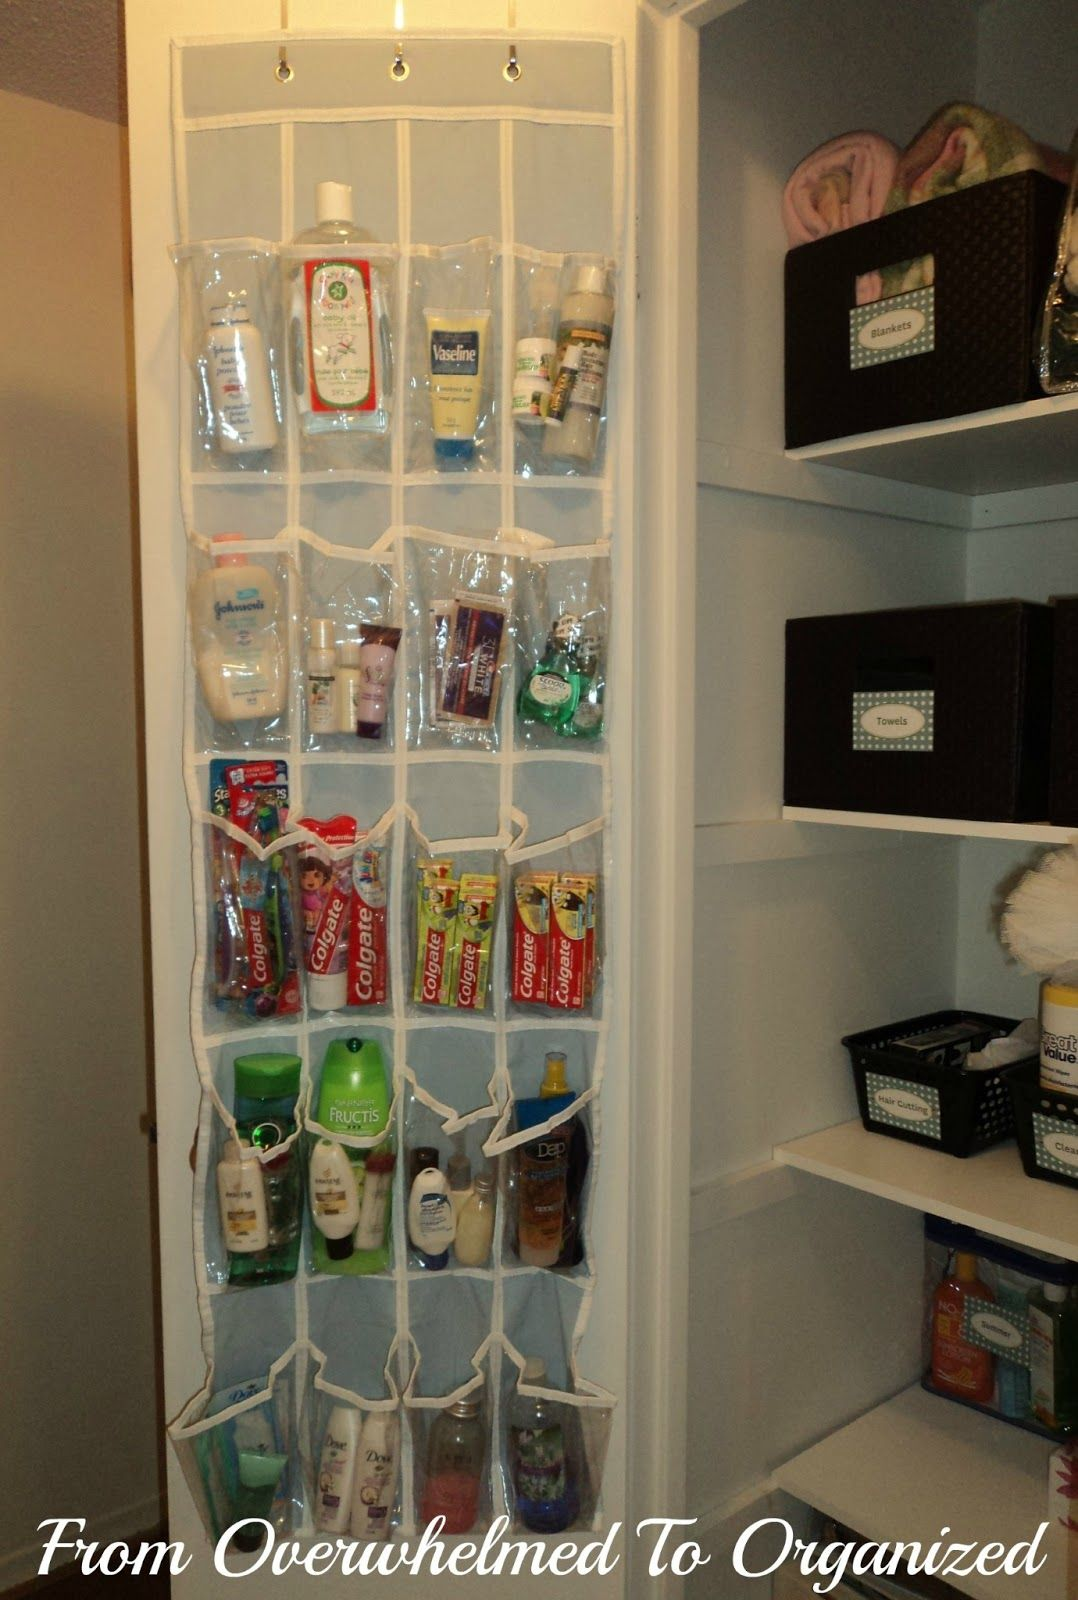 Bathroom cabinet door organizer - Organized Linen Closet Clear Over The Door Shoe Organizer Filled With Extra Bathroom